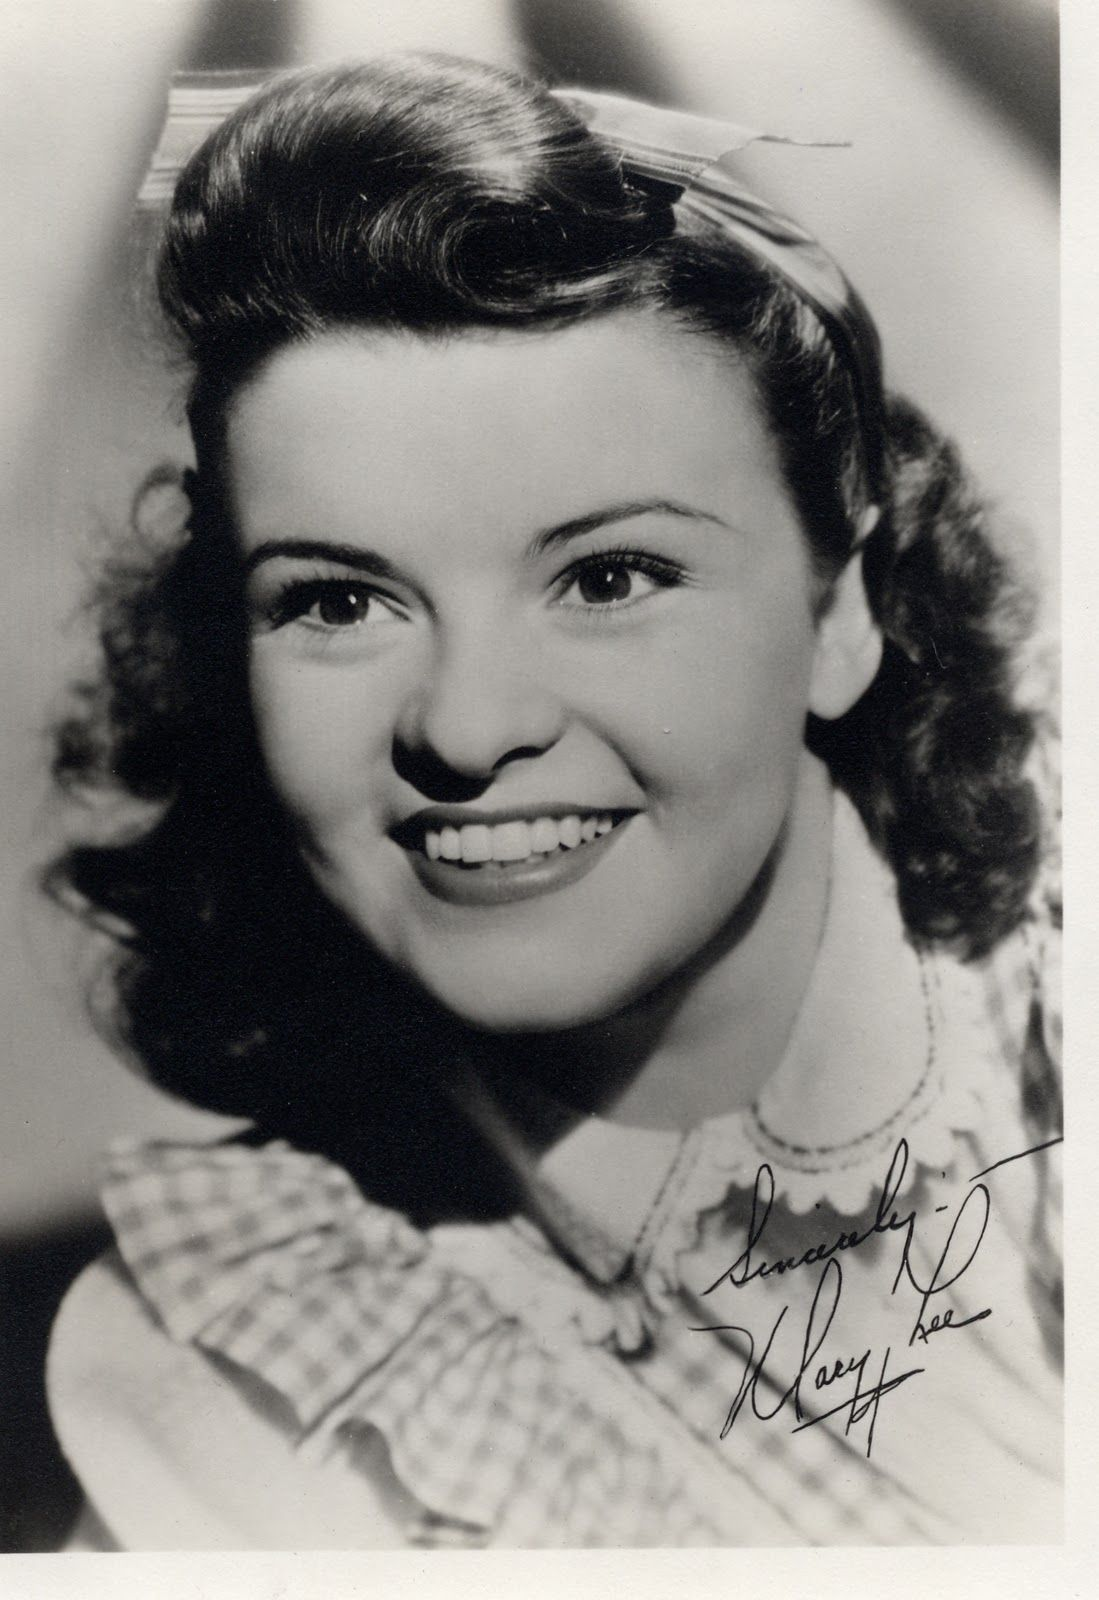 Mary Lee (actress)